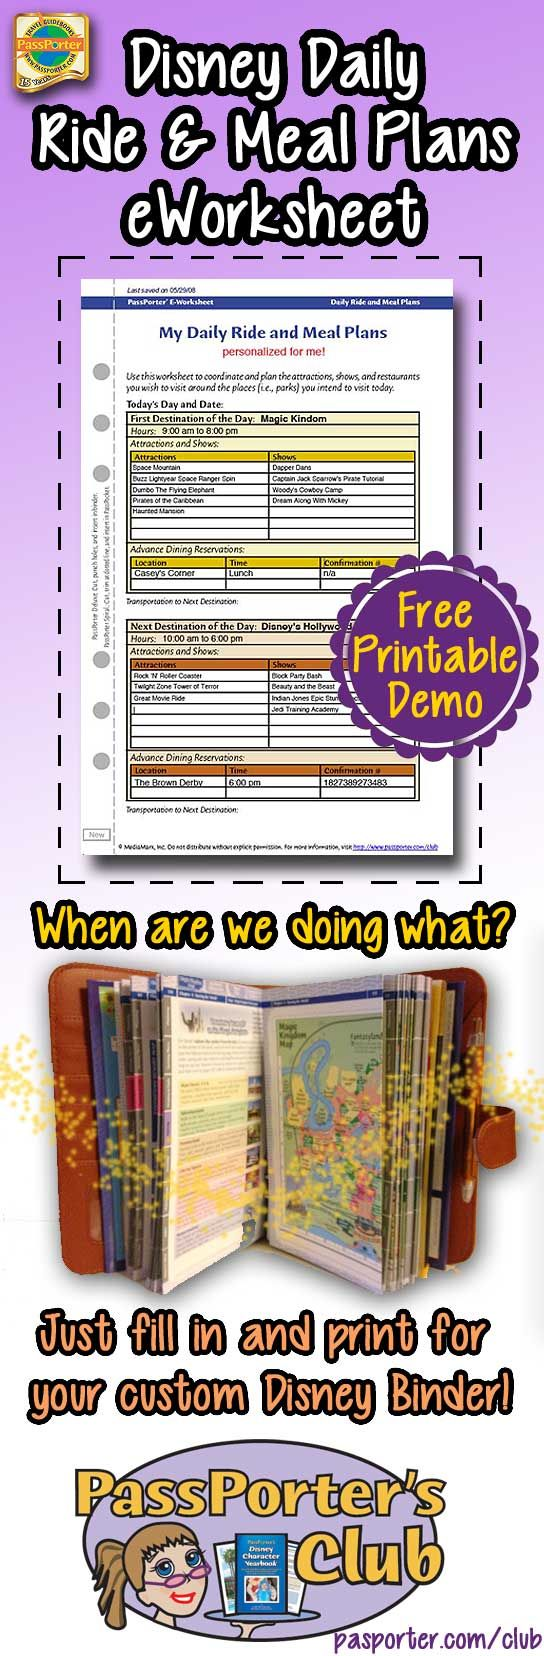 Disney Daily Ride and Meal Plan eWorksheet -- automagically calculates for you! Free printable demo.